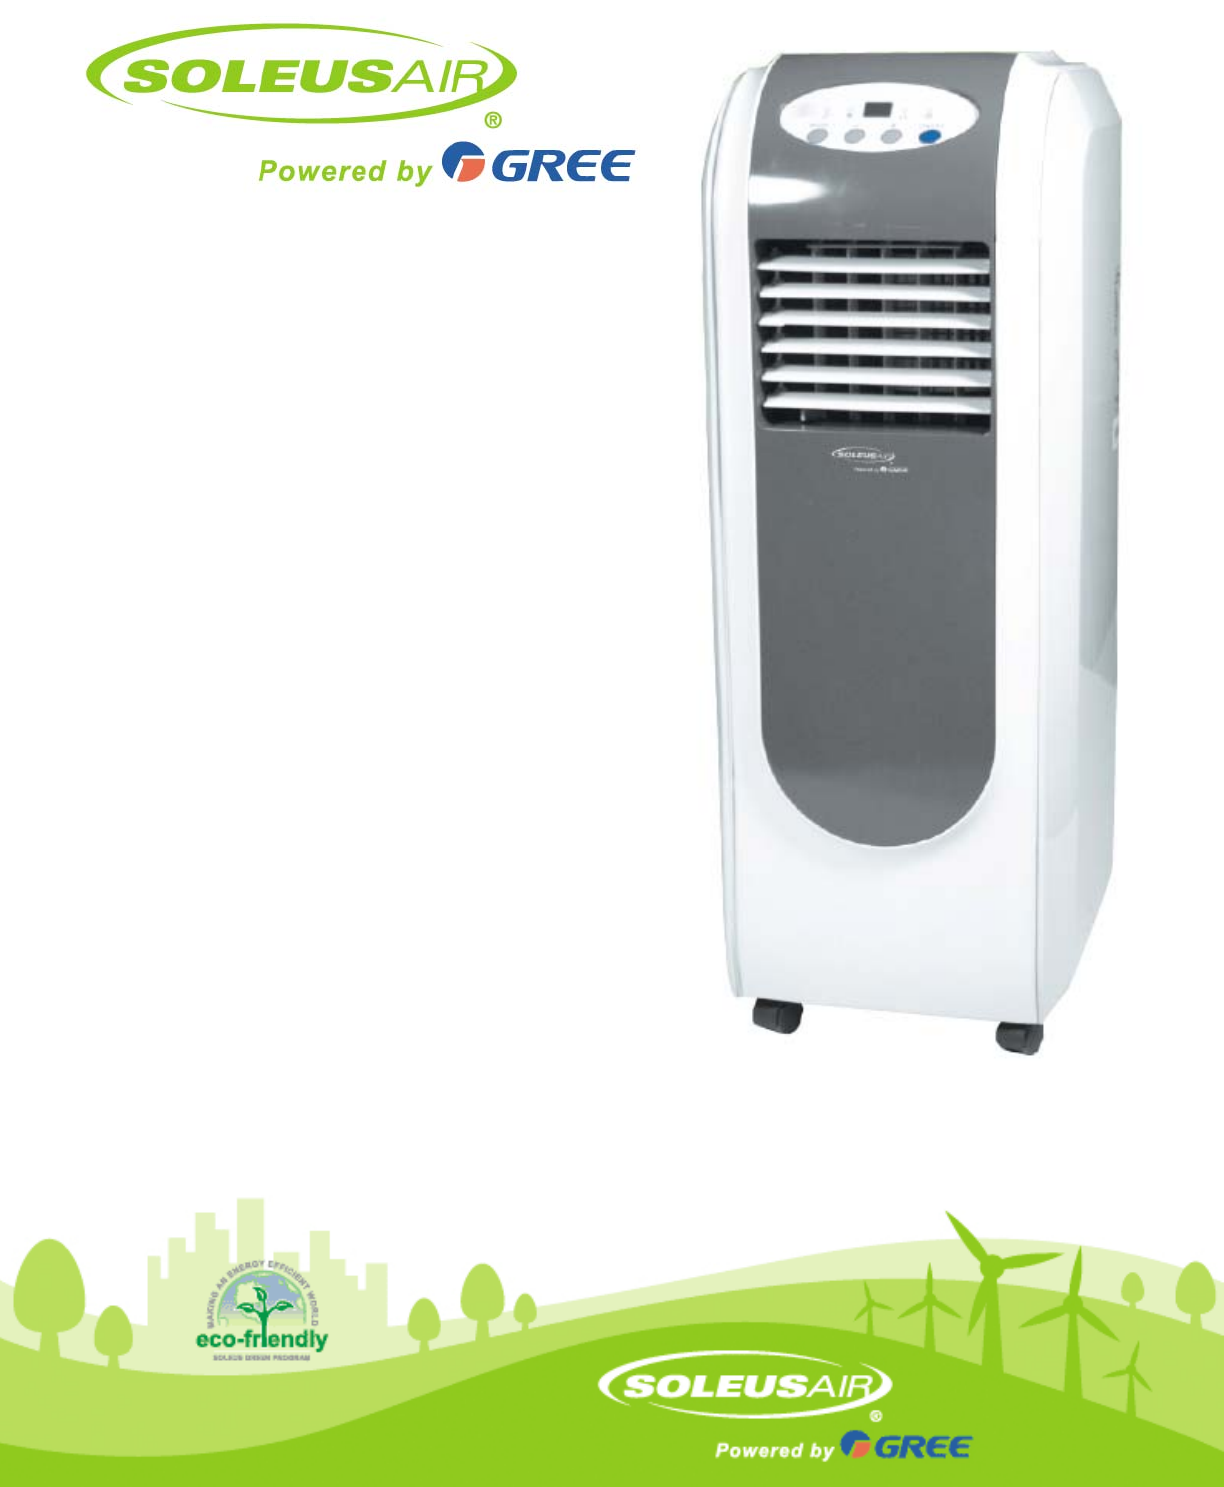 Superbe 10,000 BTU Portable Air Conditioner